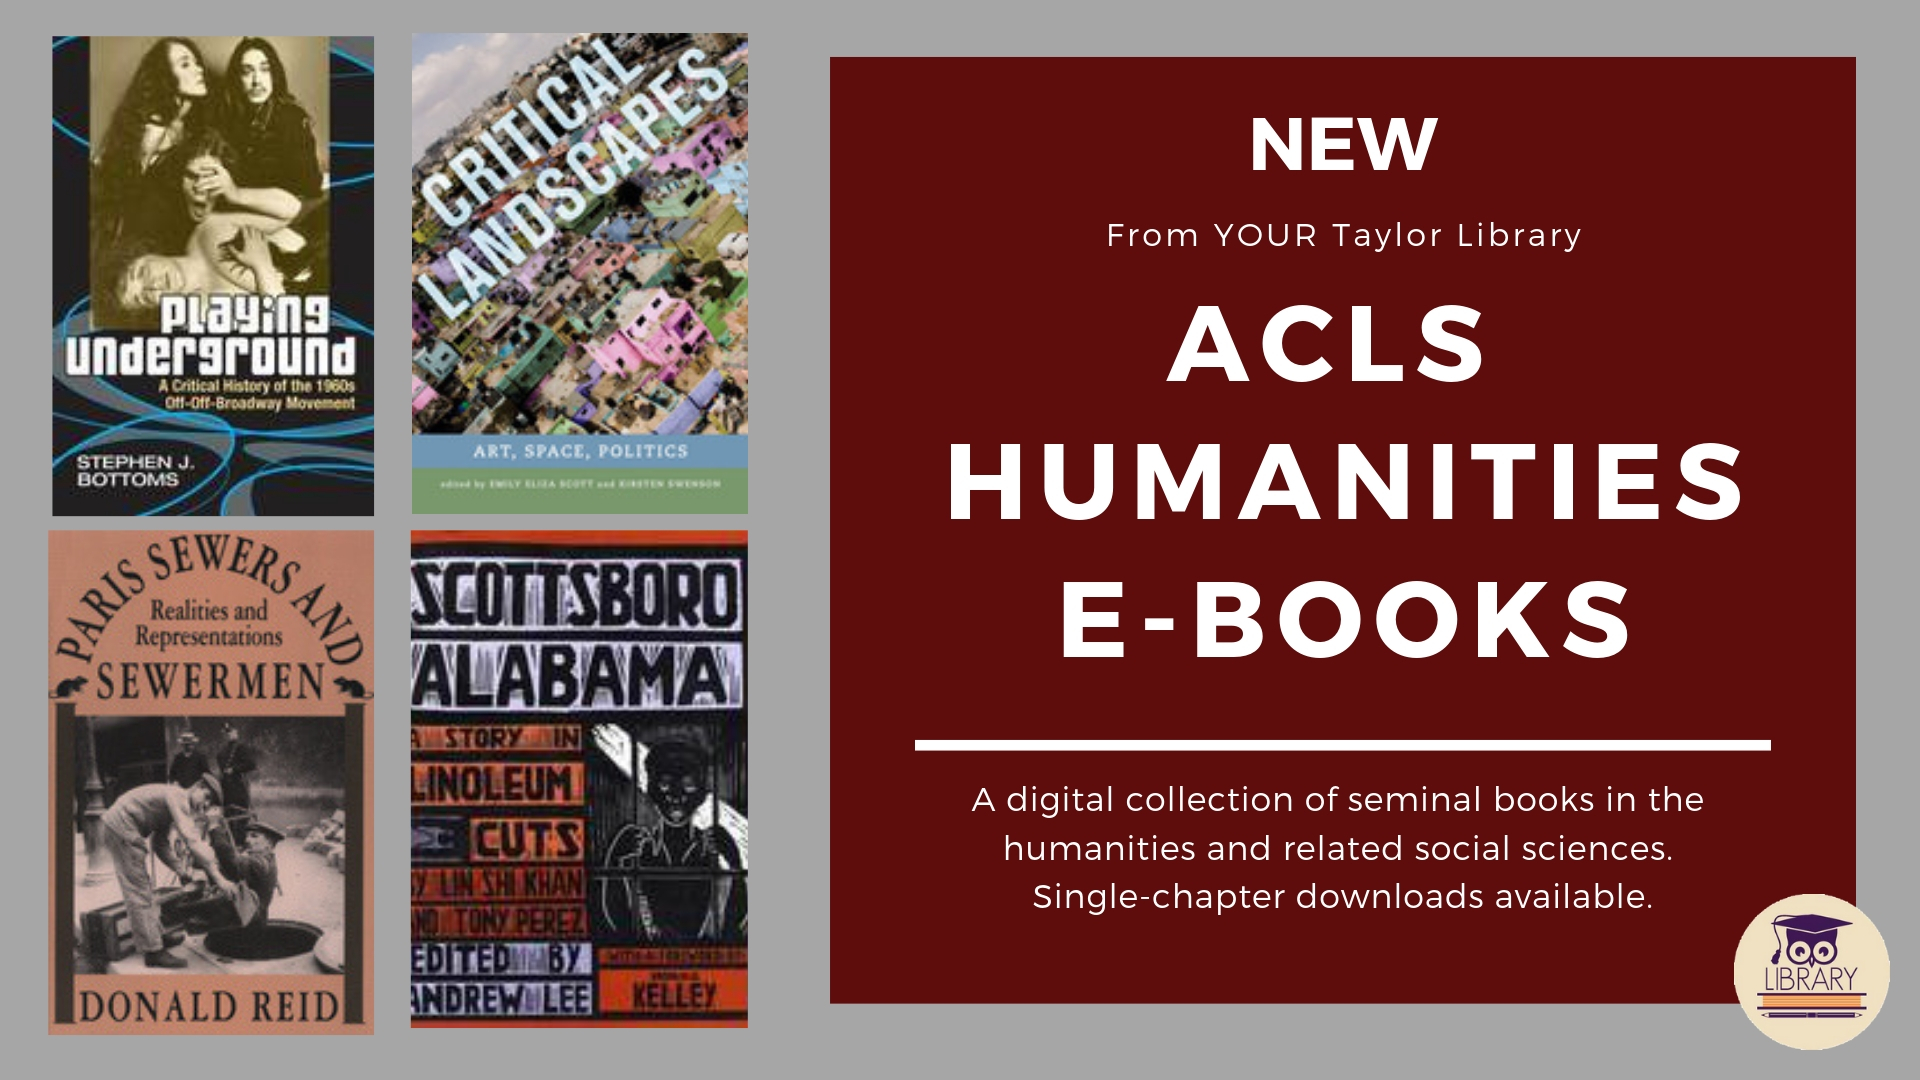 New Humanities e-book database provides seminal texts